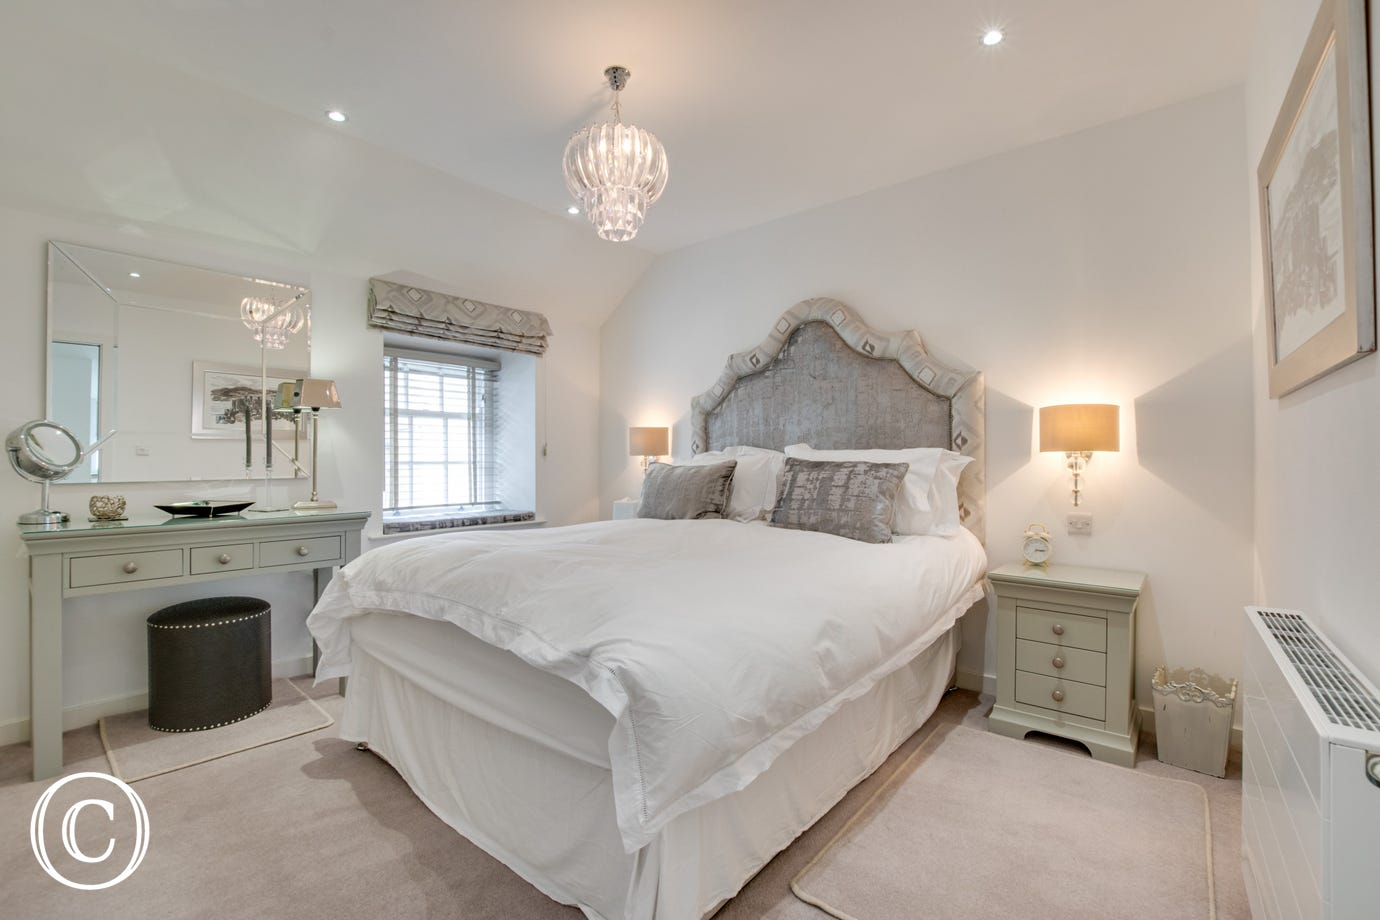 Large bedroom with king size bed